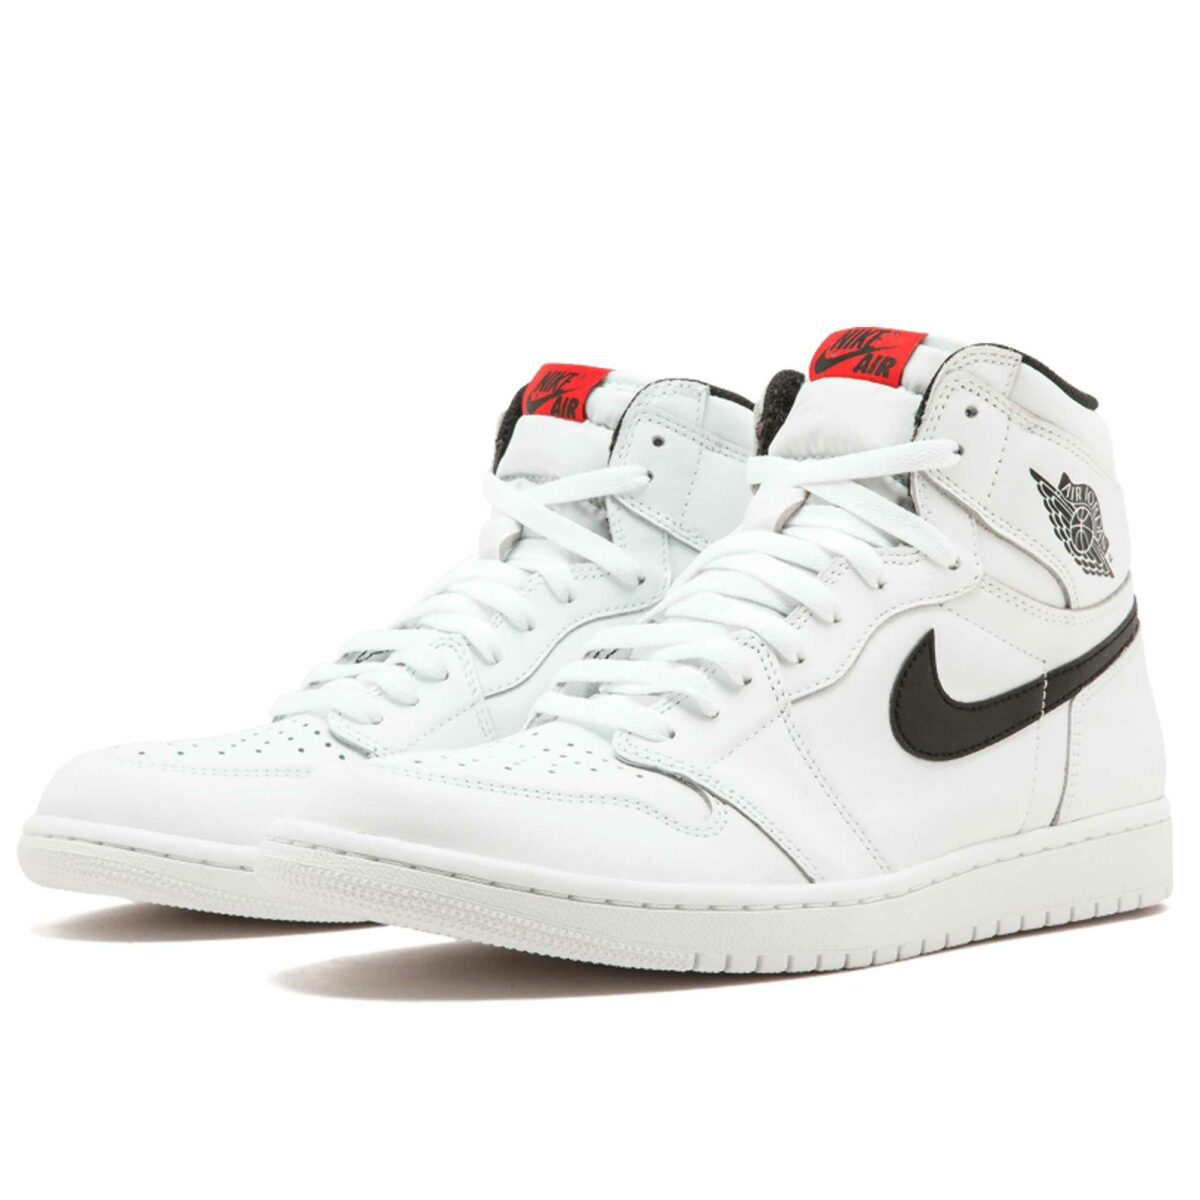 nike air Jordan 1 retro high og white black 555088_102 купить